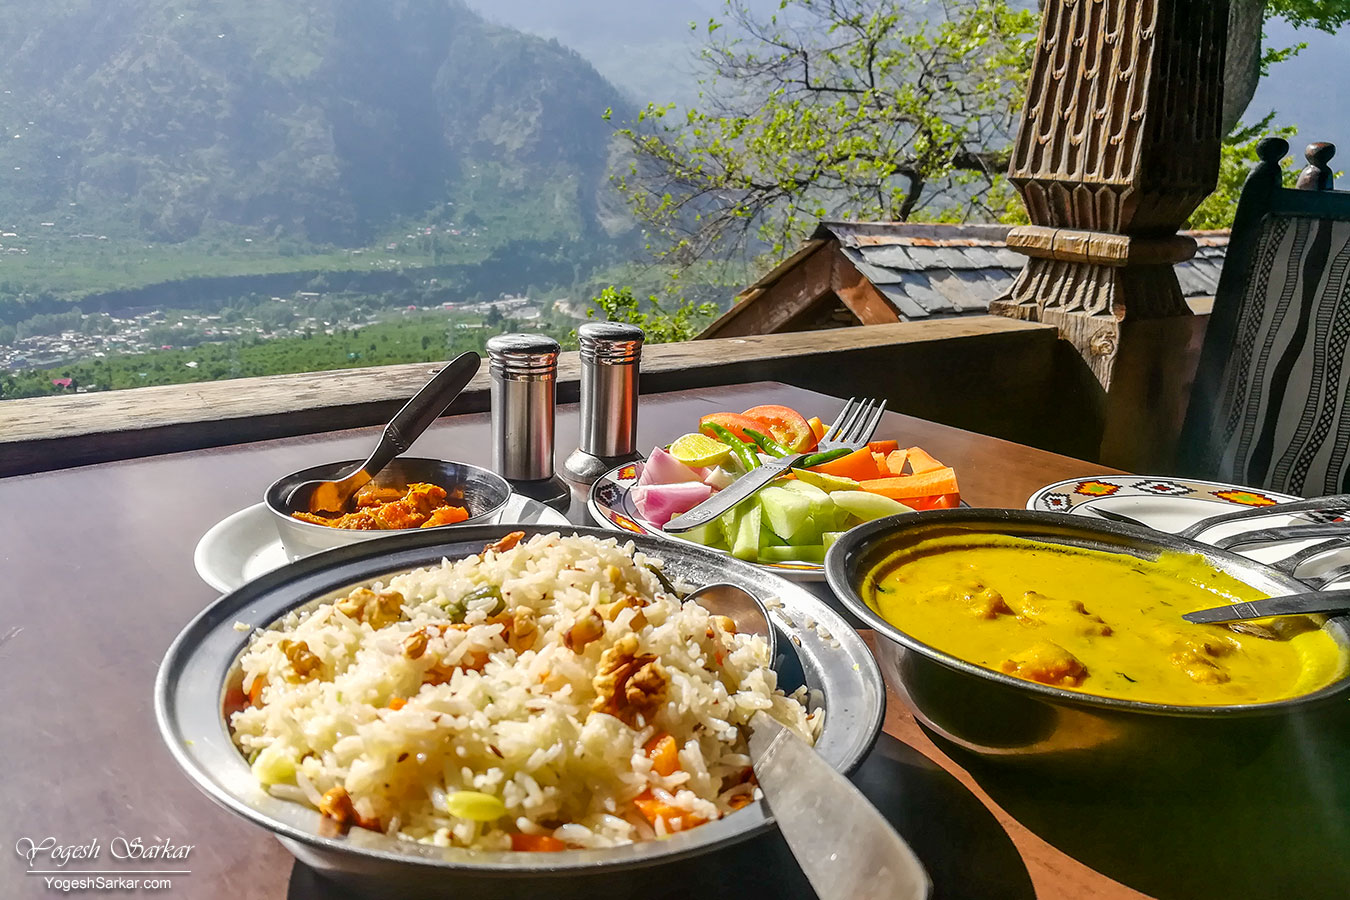 08-lunch-at-naggar-castle.jpg